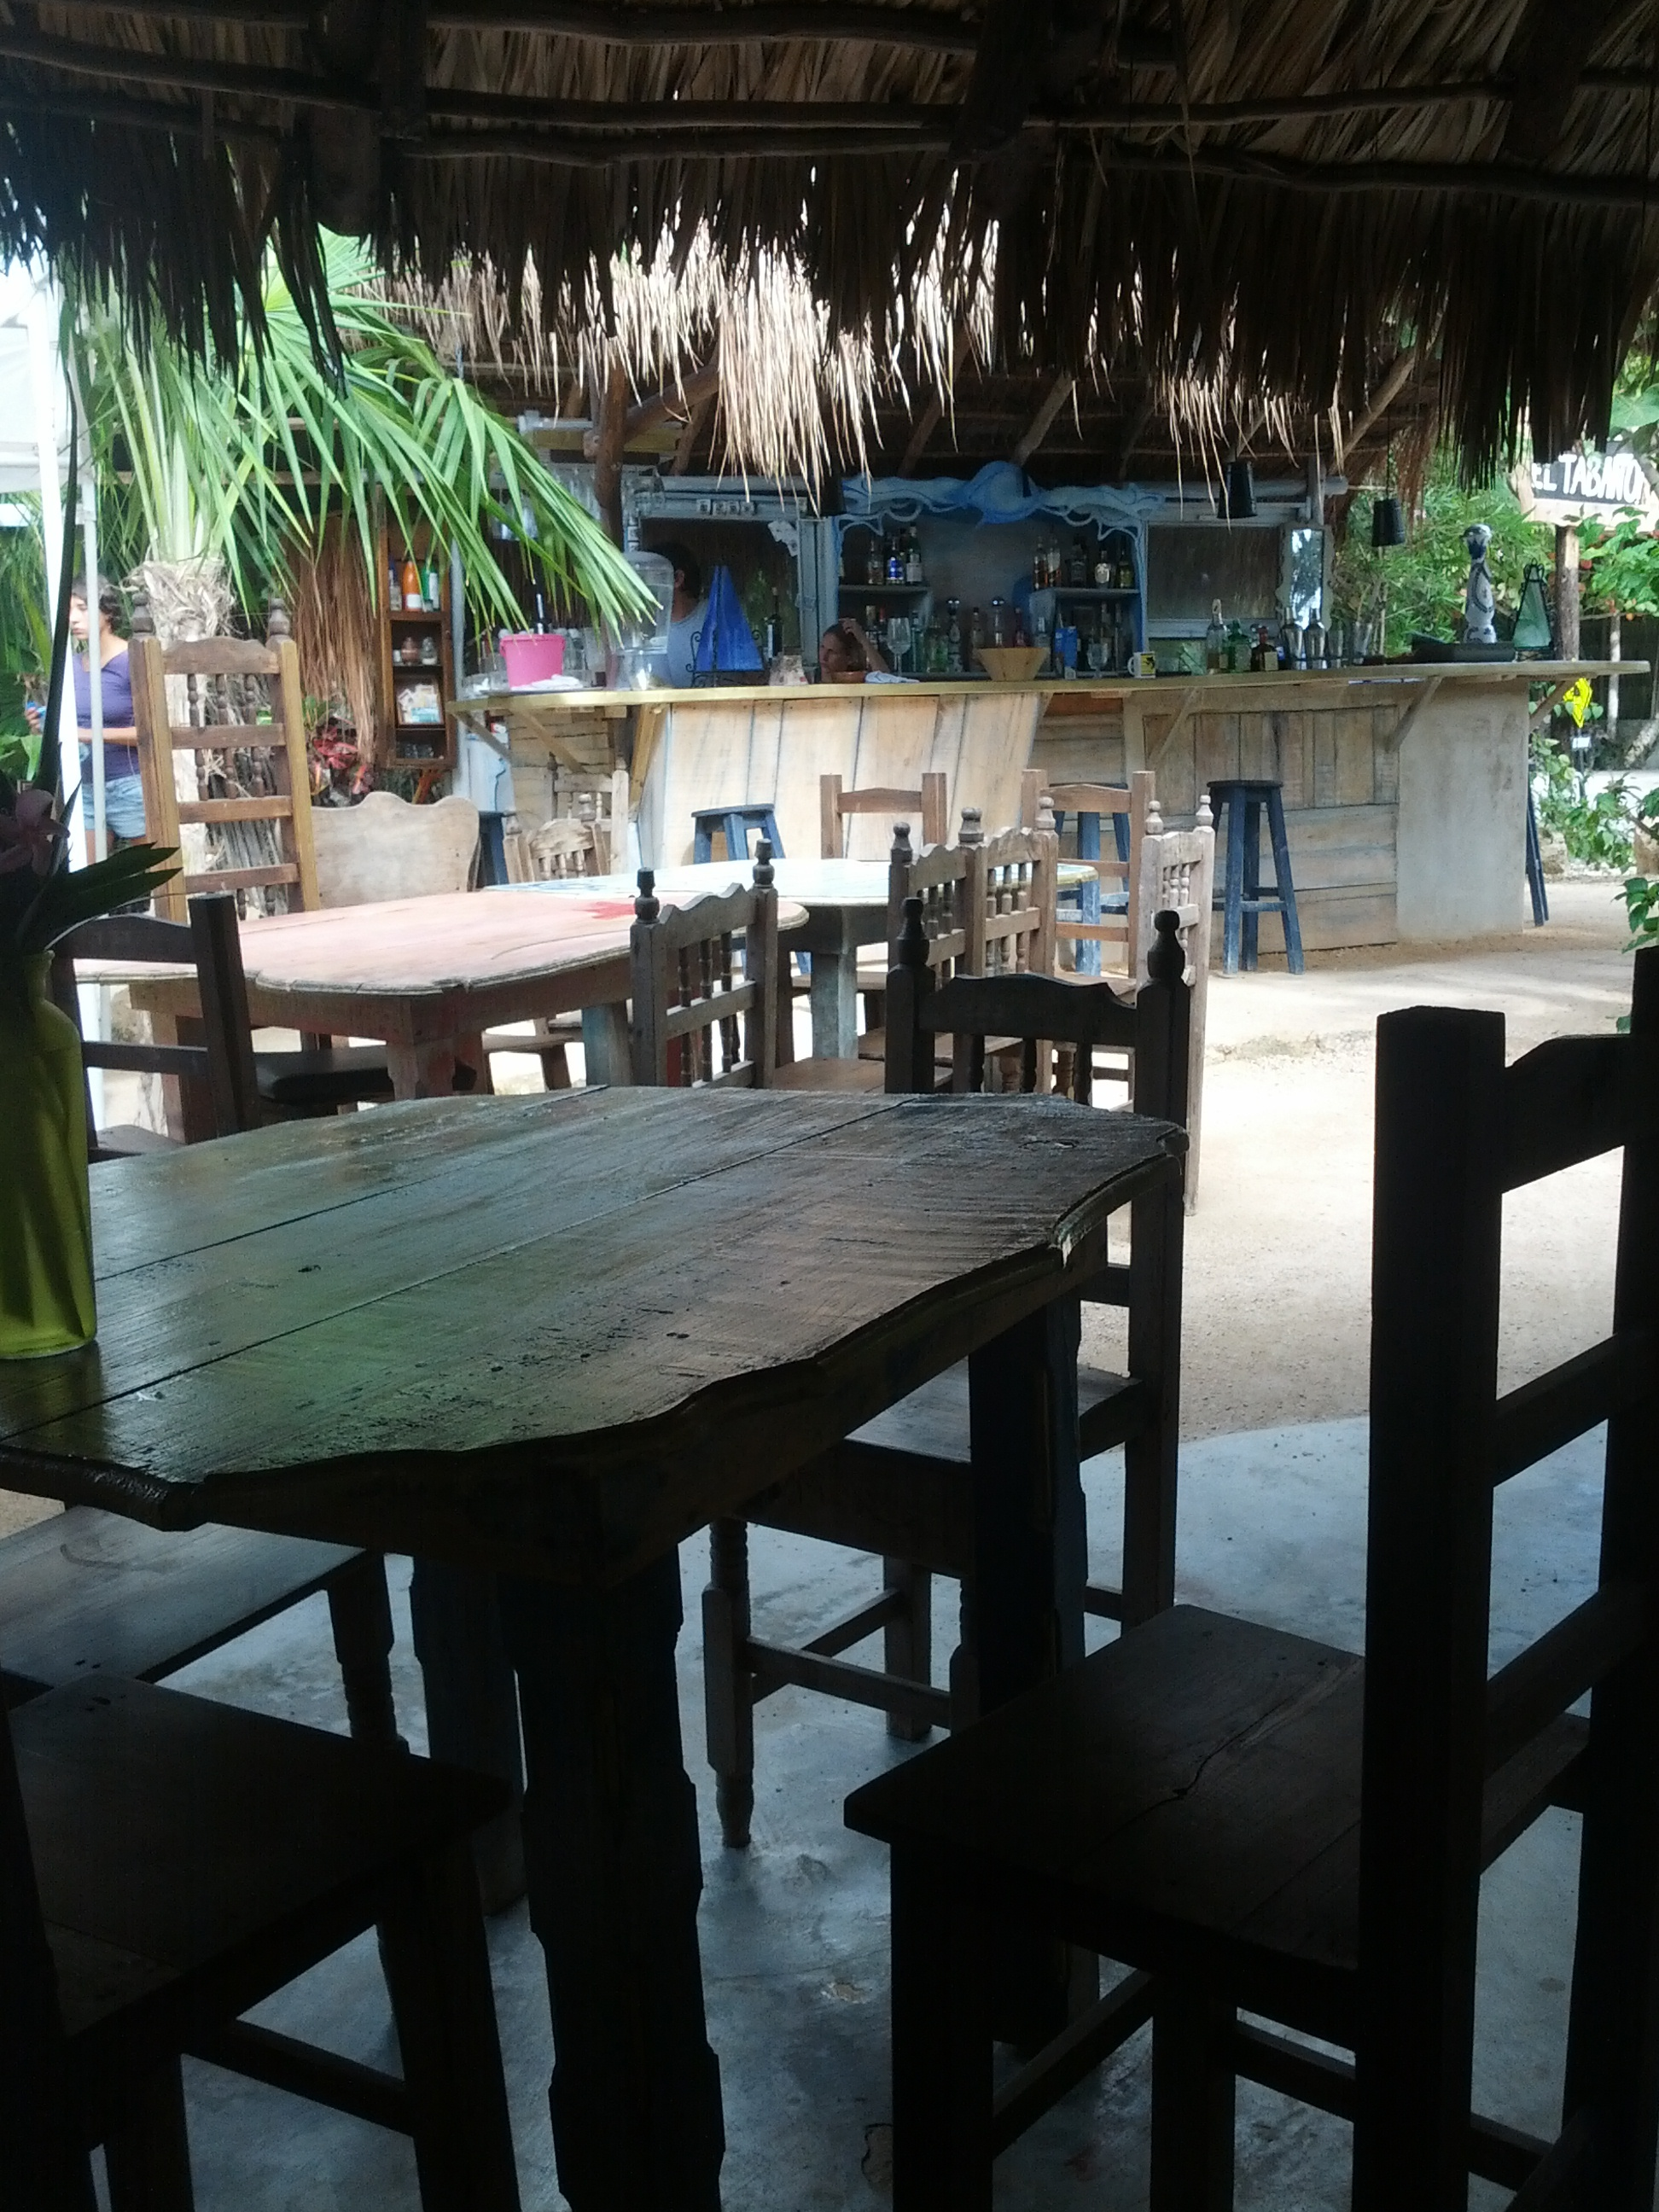 Laid back El Tbano restaurante at the Tulum beach strip